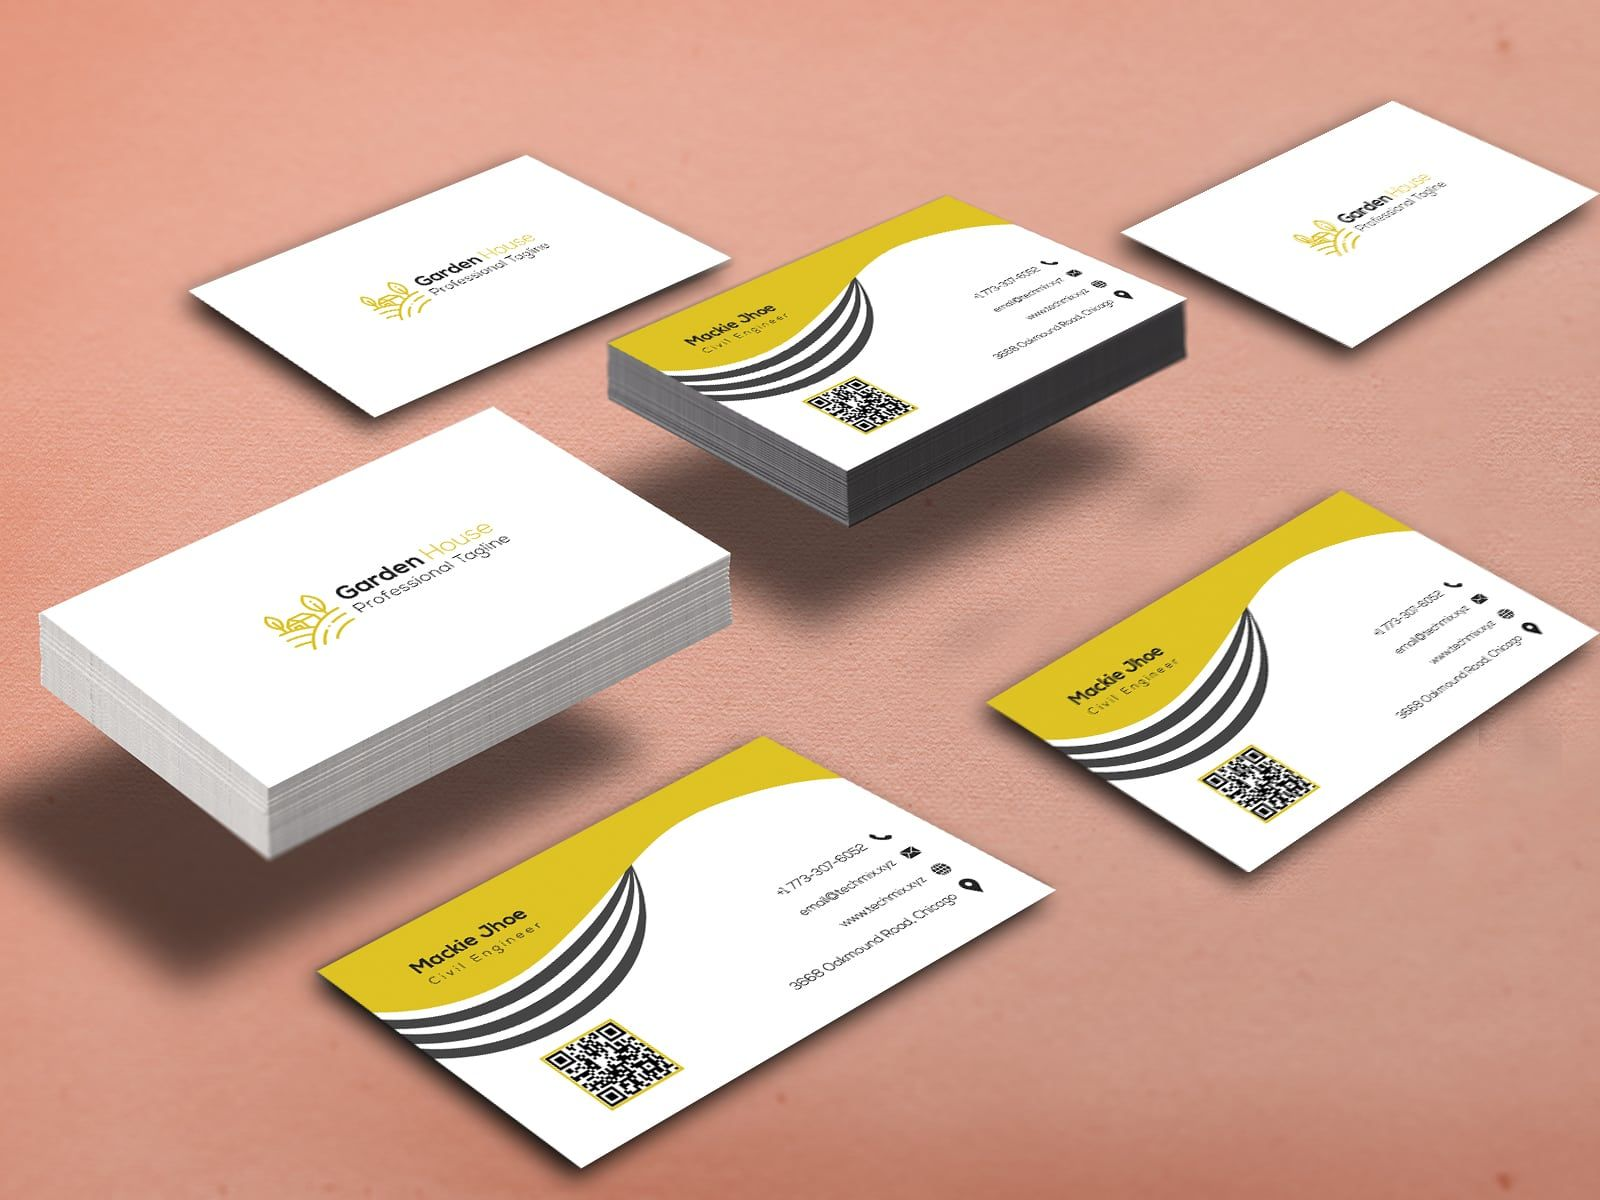 Civil Engineer Business Cards Business Cards Creative Templates Business Cards Collection Cool Business Cards